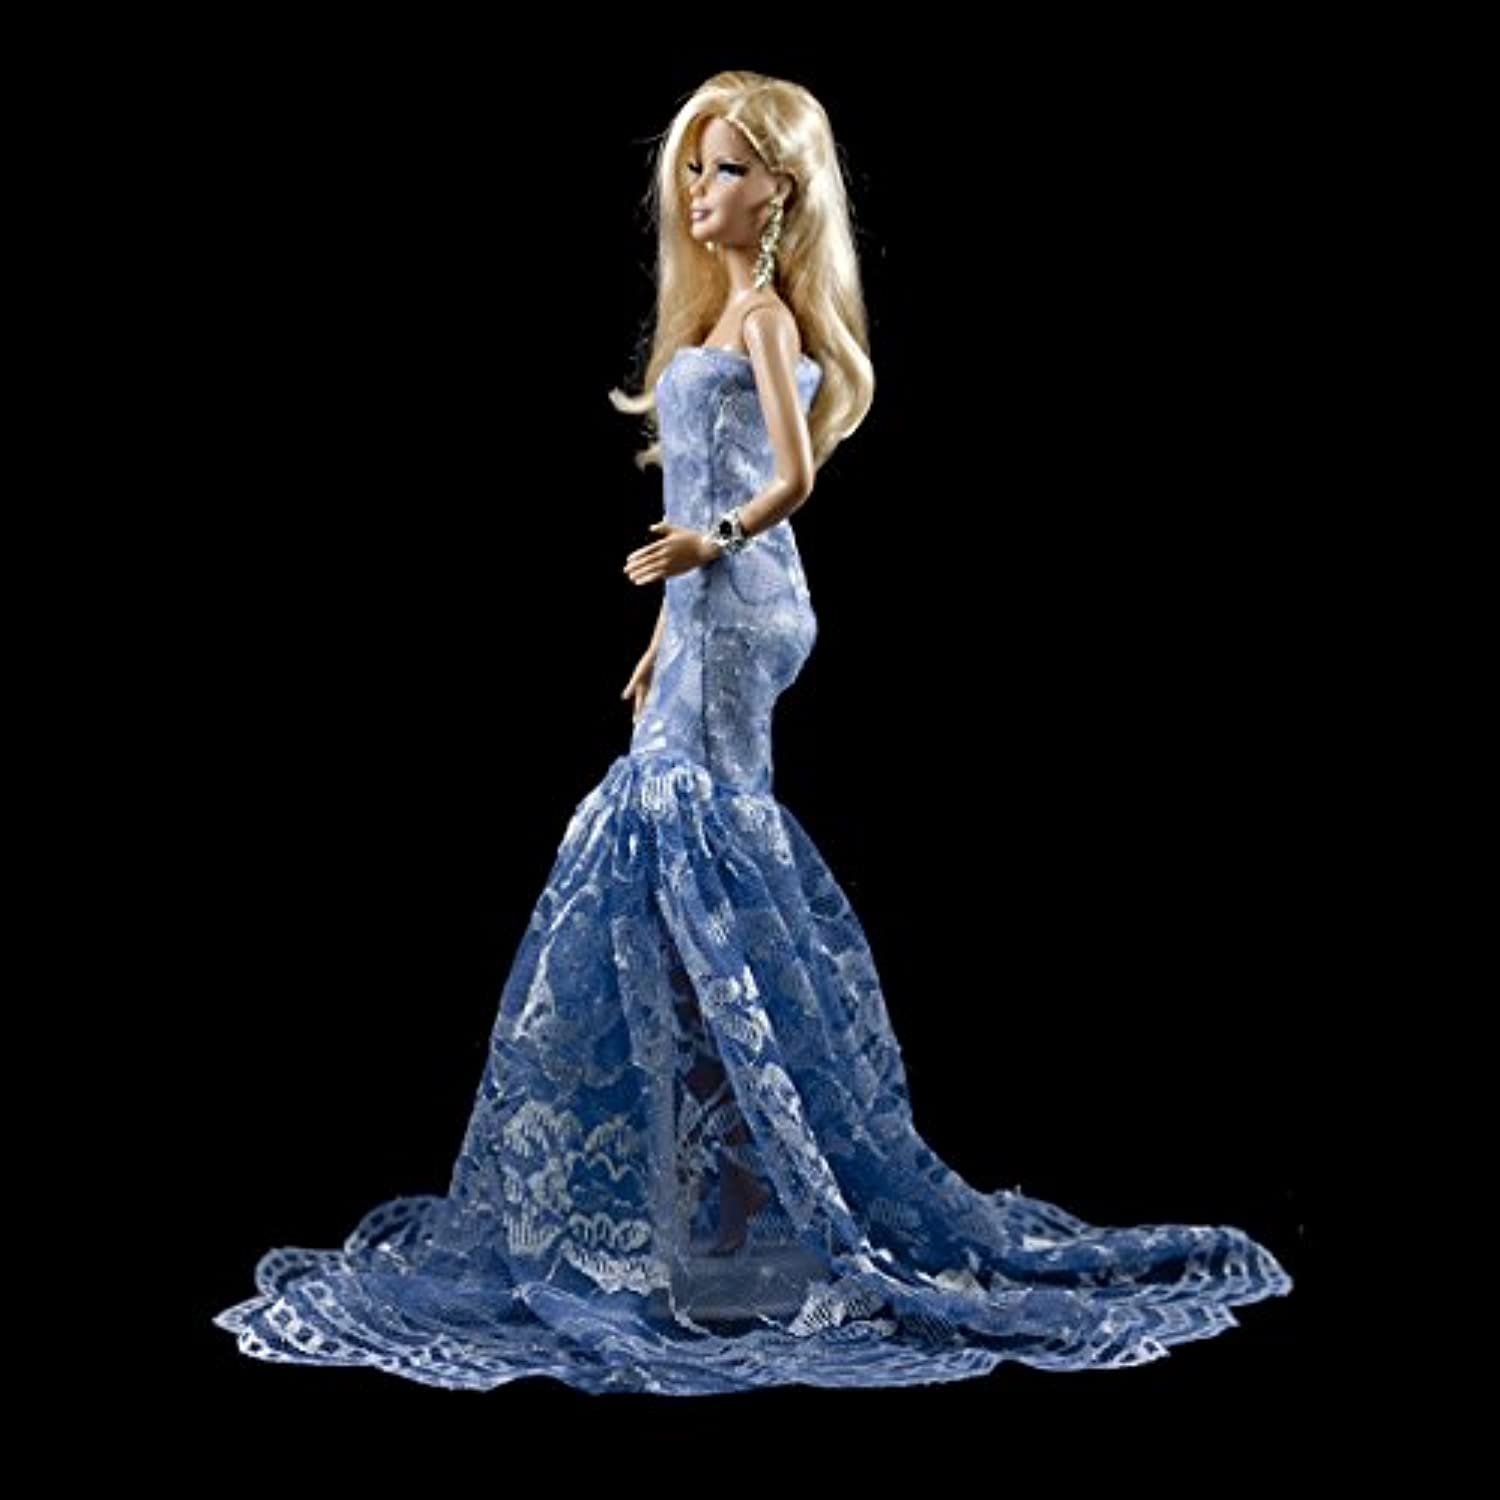 Barbie Blue Multitextured Lace Strapless Gown Blue Long Dress for Barbie Doll